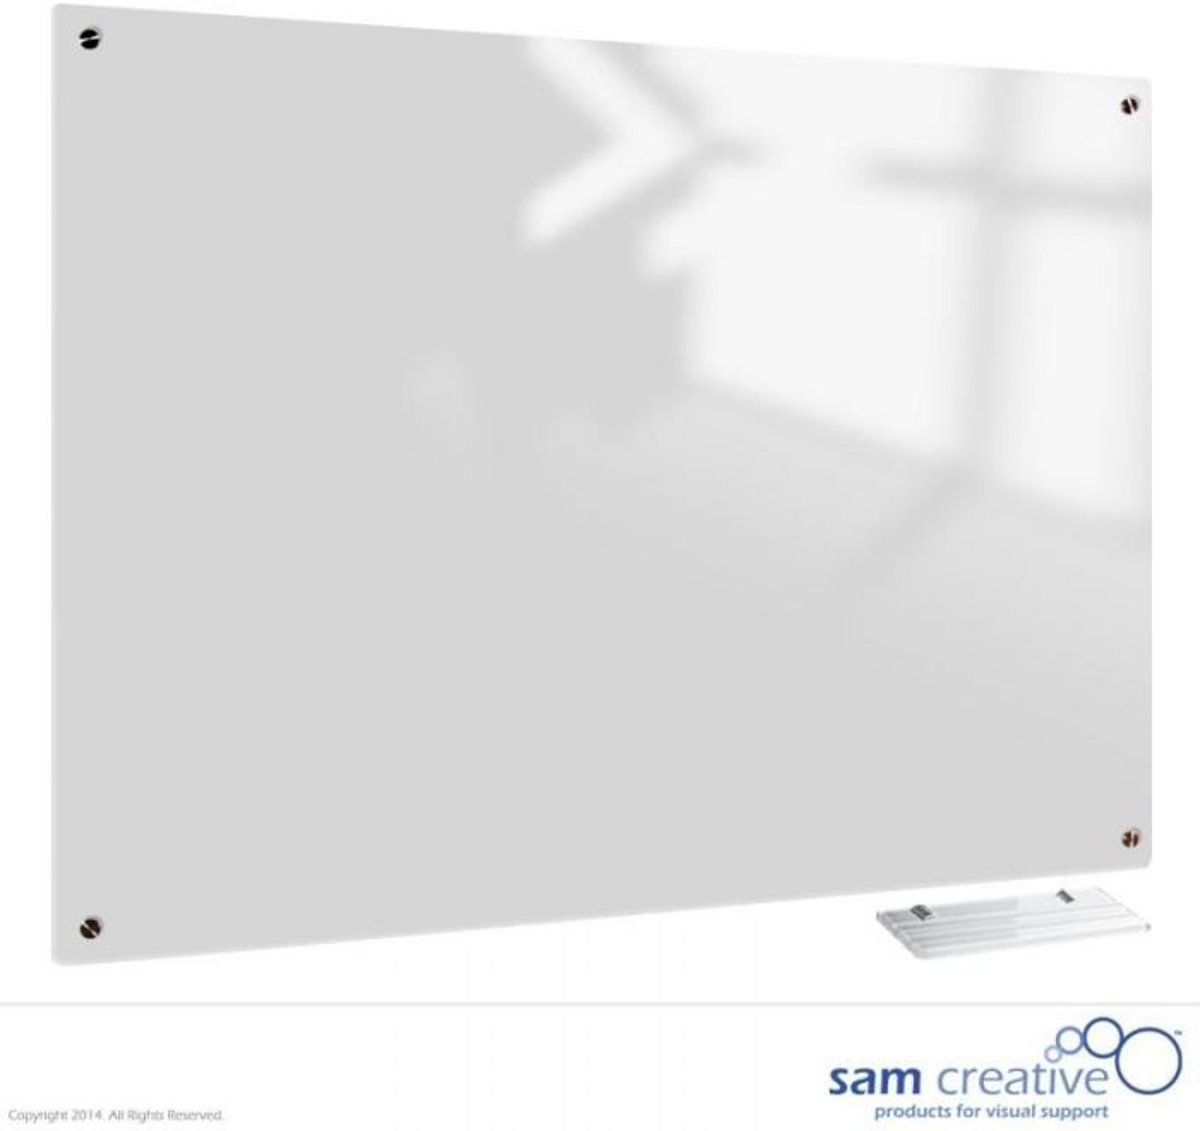 Afbeelding van product Sam Creative  Glassboard White Magnetic 60x90 cm